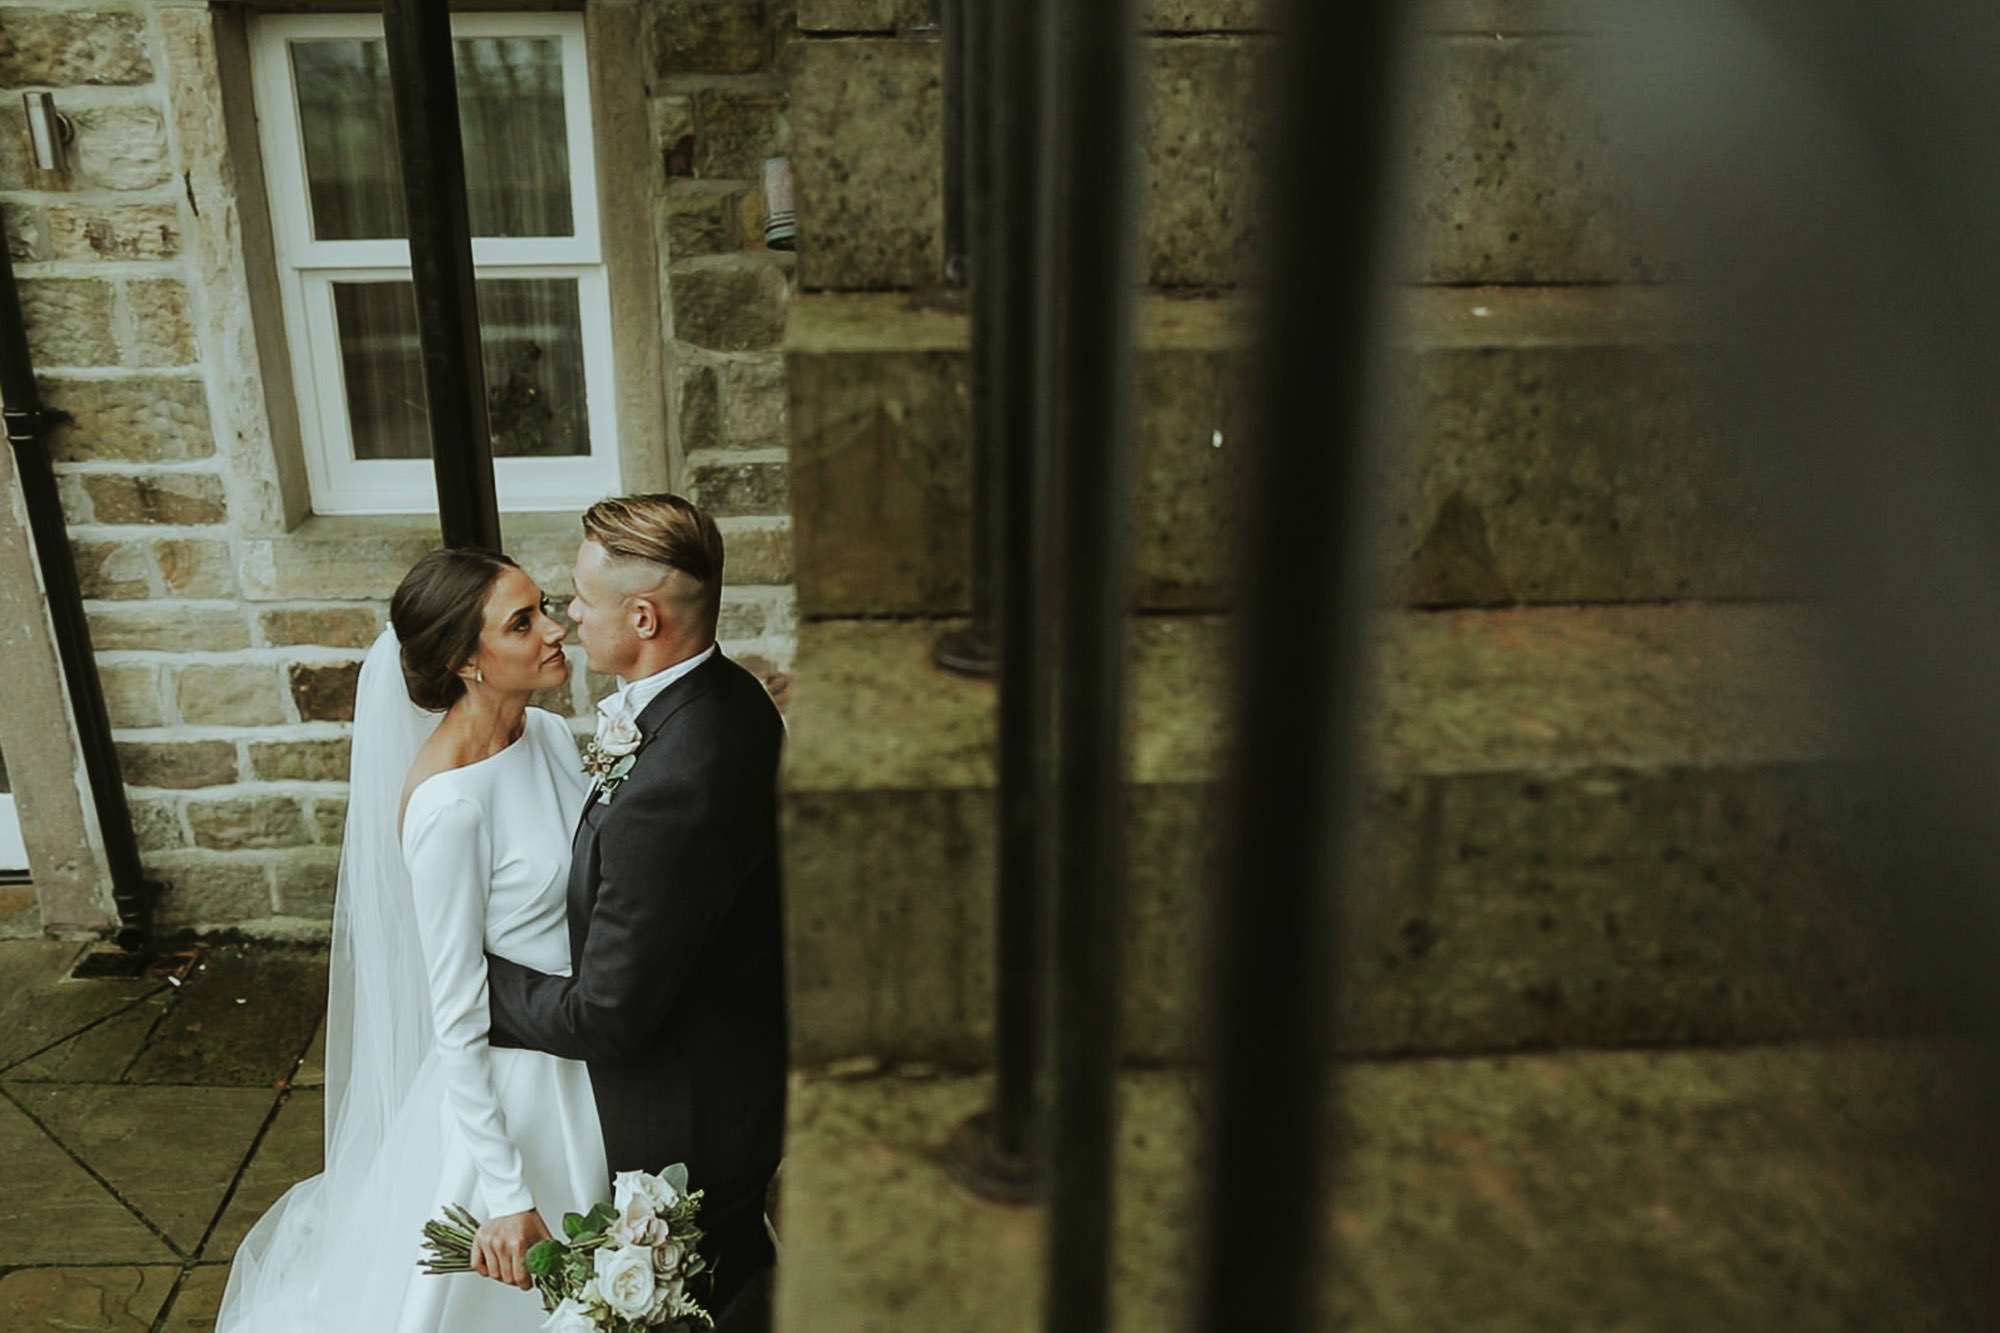 NOW MAKING WEDDING FILMS | EMBEE PHOTOGRAPHY